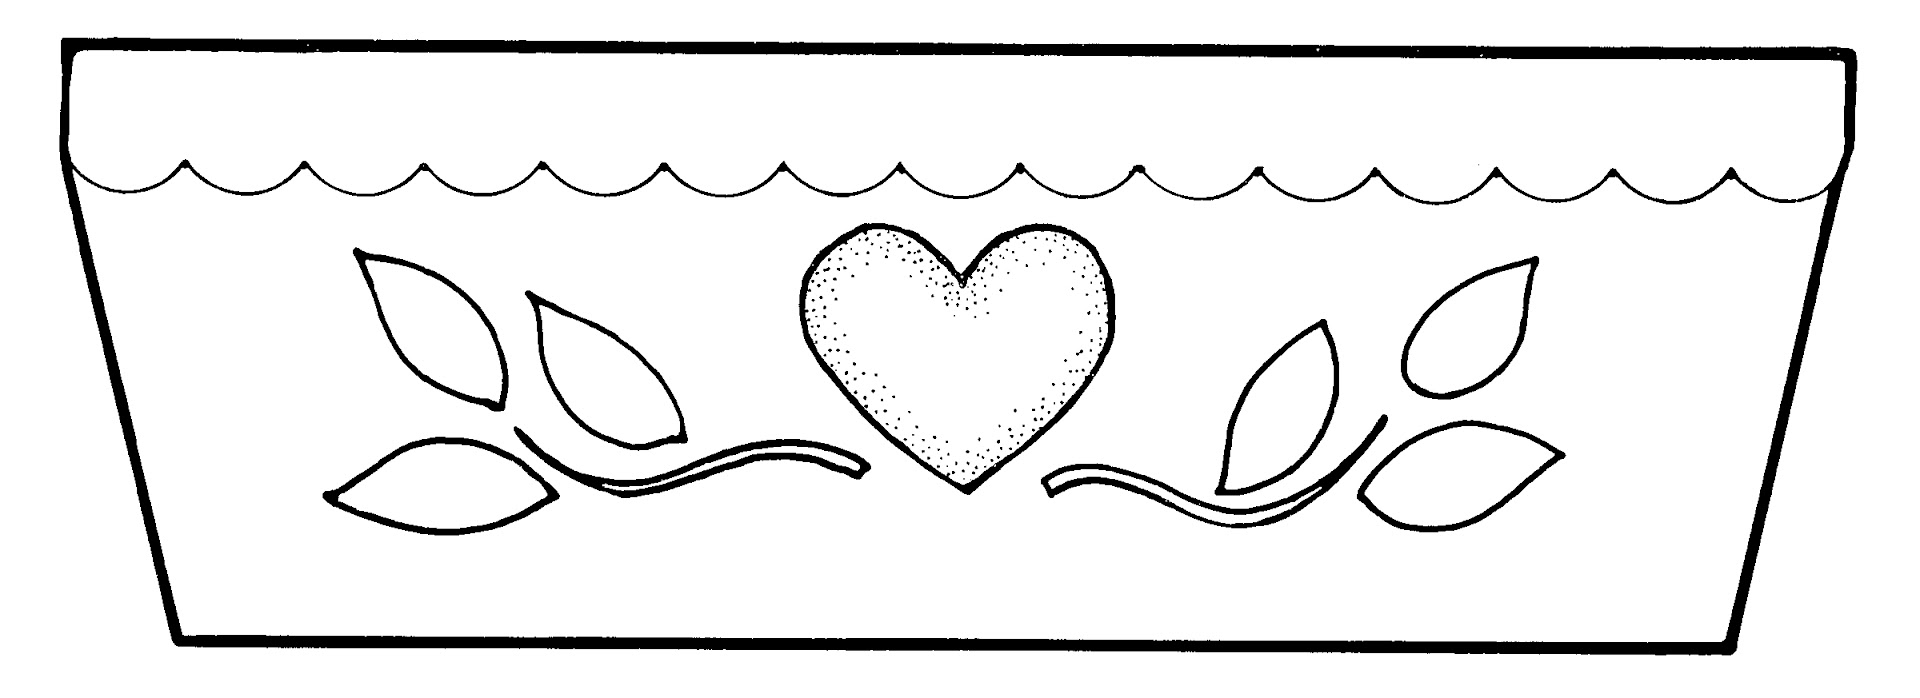 Flower Pot Page Empty Coloring Pages